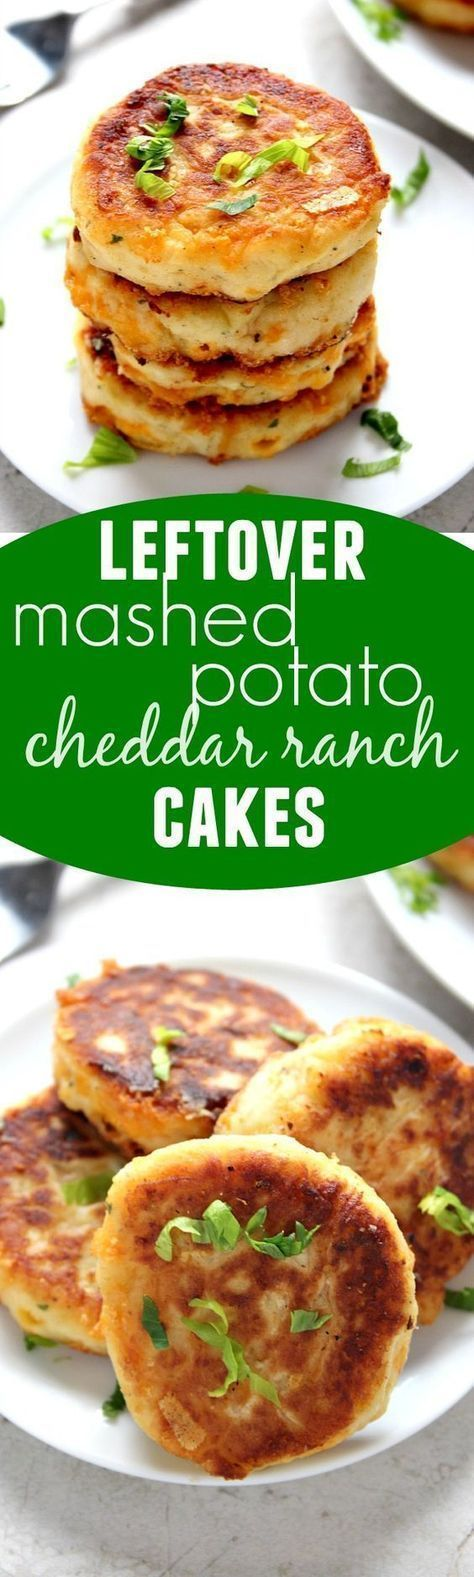 """Leftover Mashed Potato Cheddar Ranch Cakes -€"""" the best use for your leftover mashed potatoes. Crispy cakes filled with cheese and ranch seasoning. Just 5 ingredients and 20 minutes is all you need to make them! 